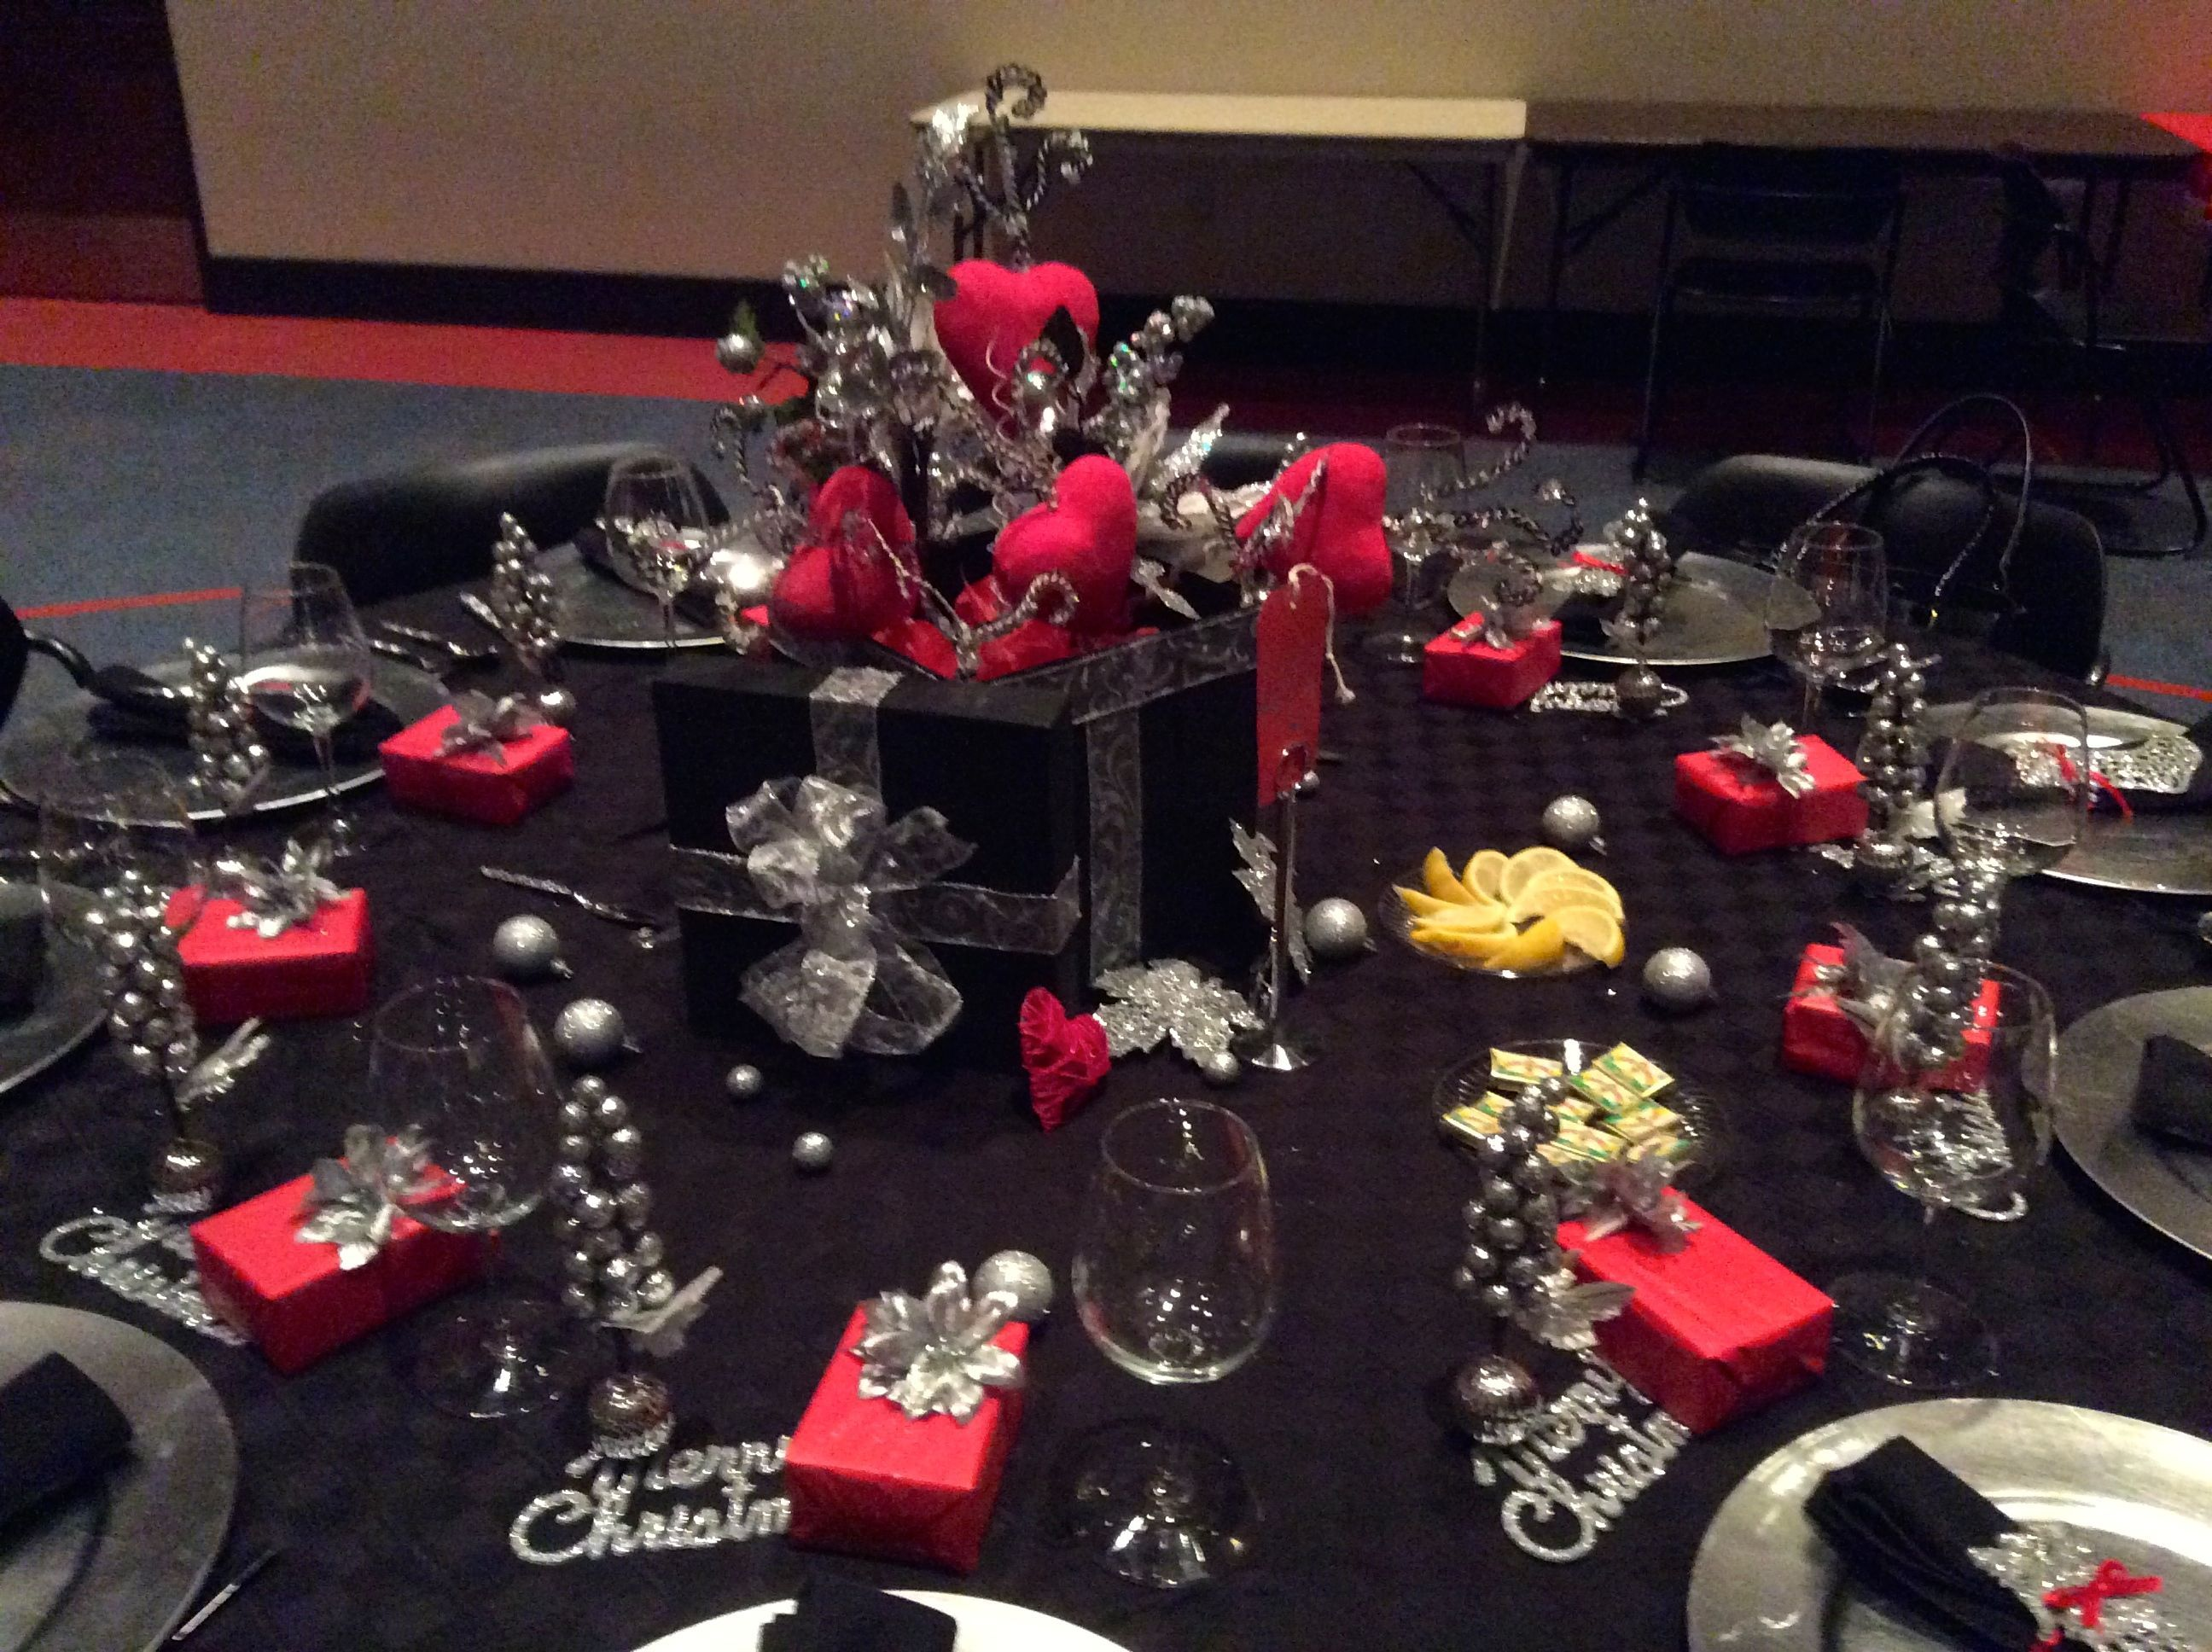 Red Black White Tablechristmas Decorations Google Search Christmas Table Decorations White Table Decorations Black White Table Decorations